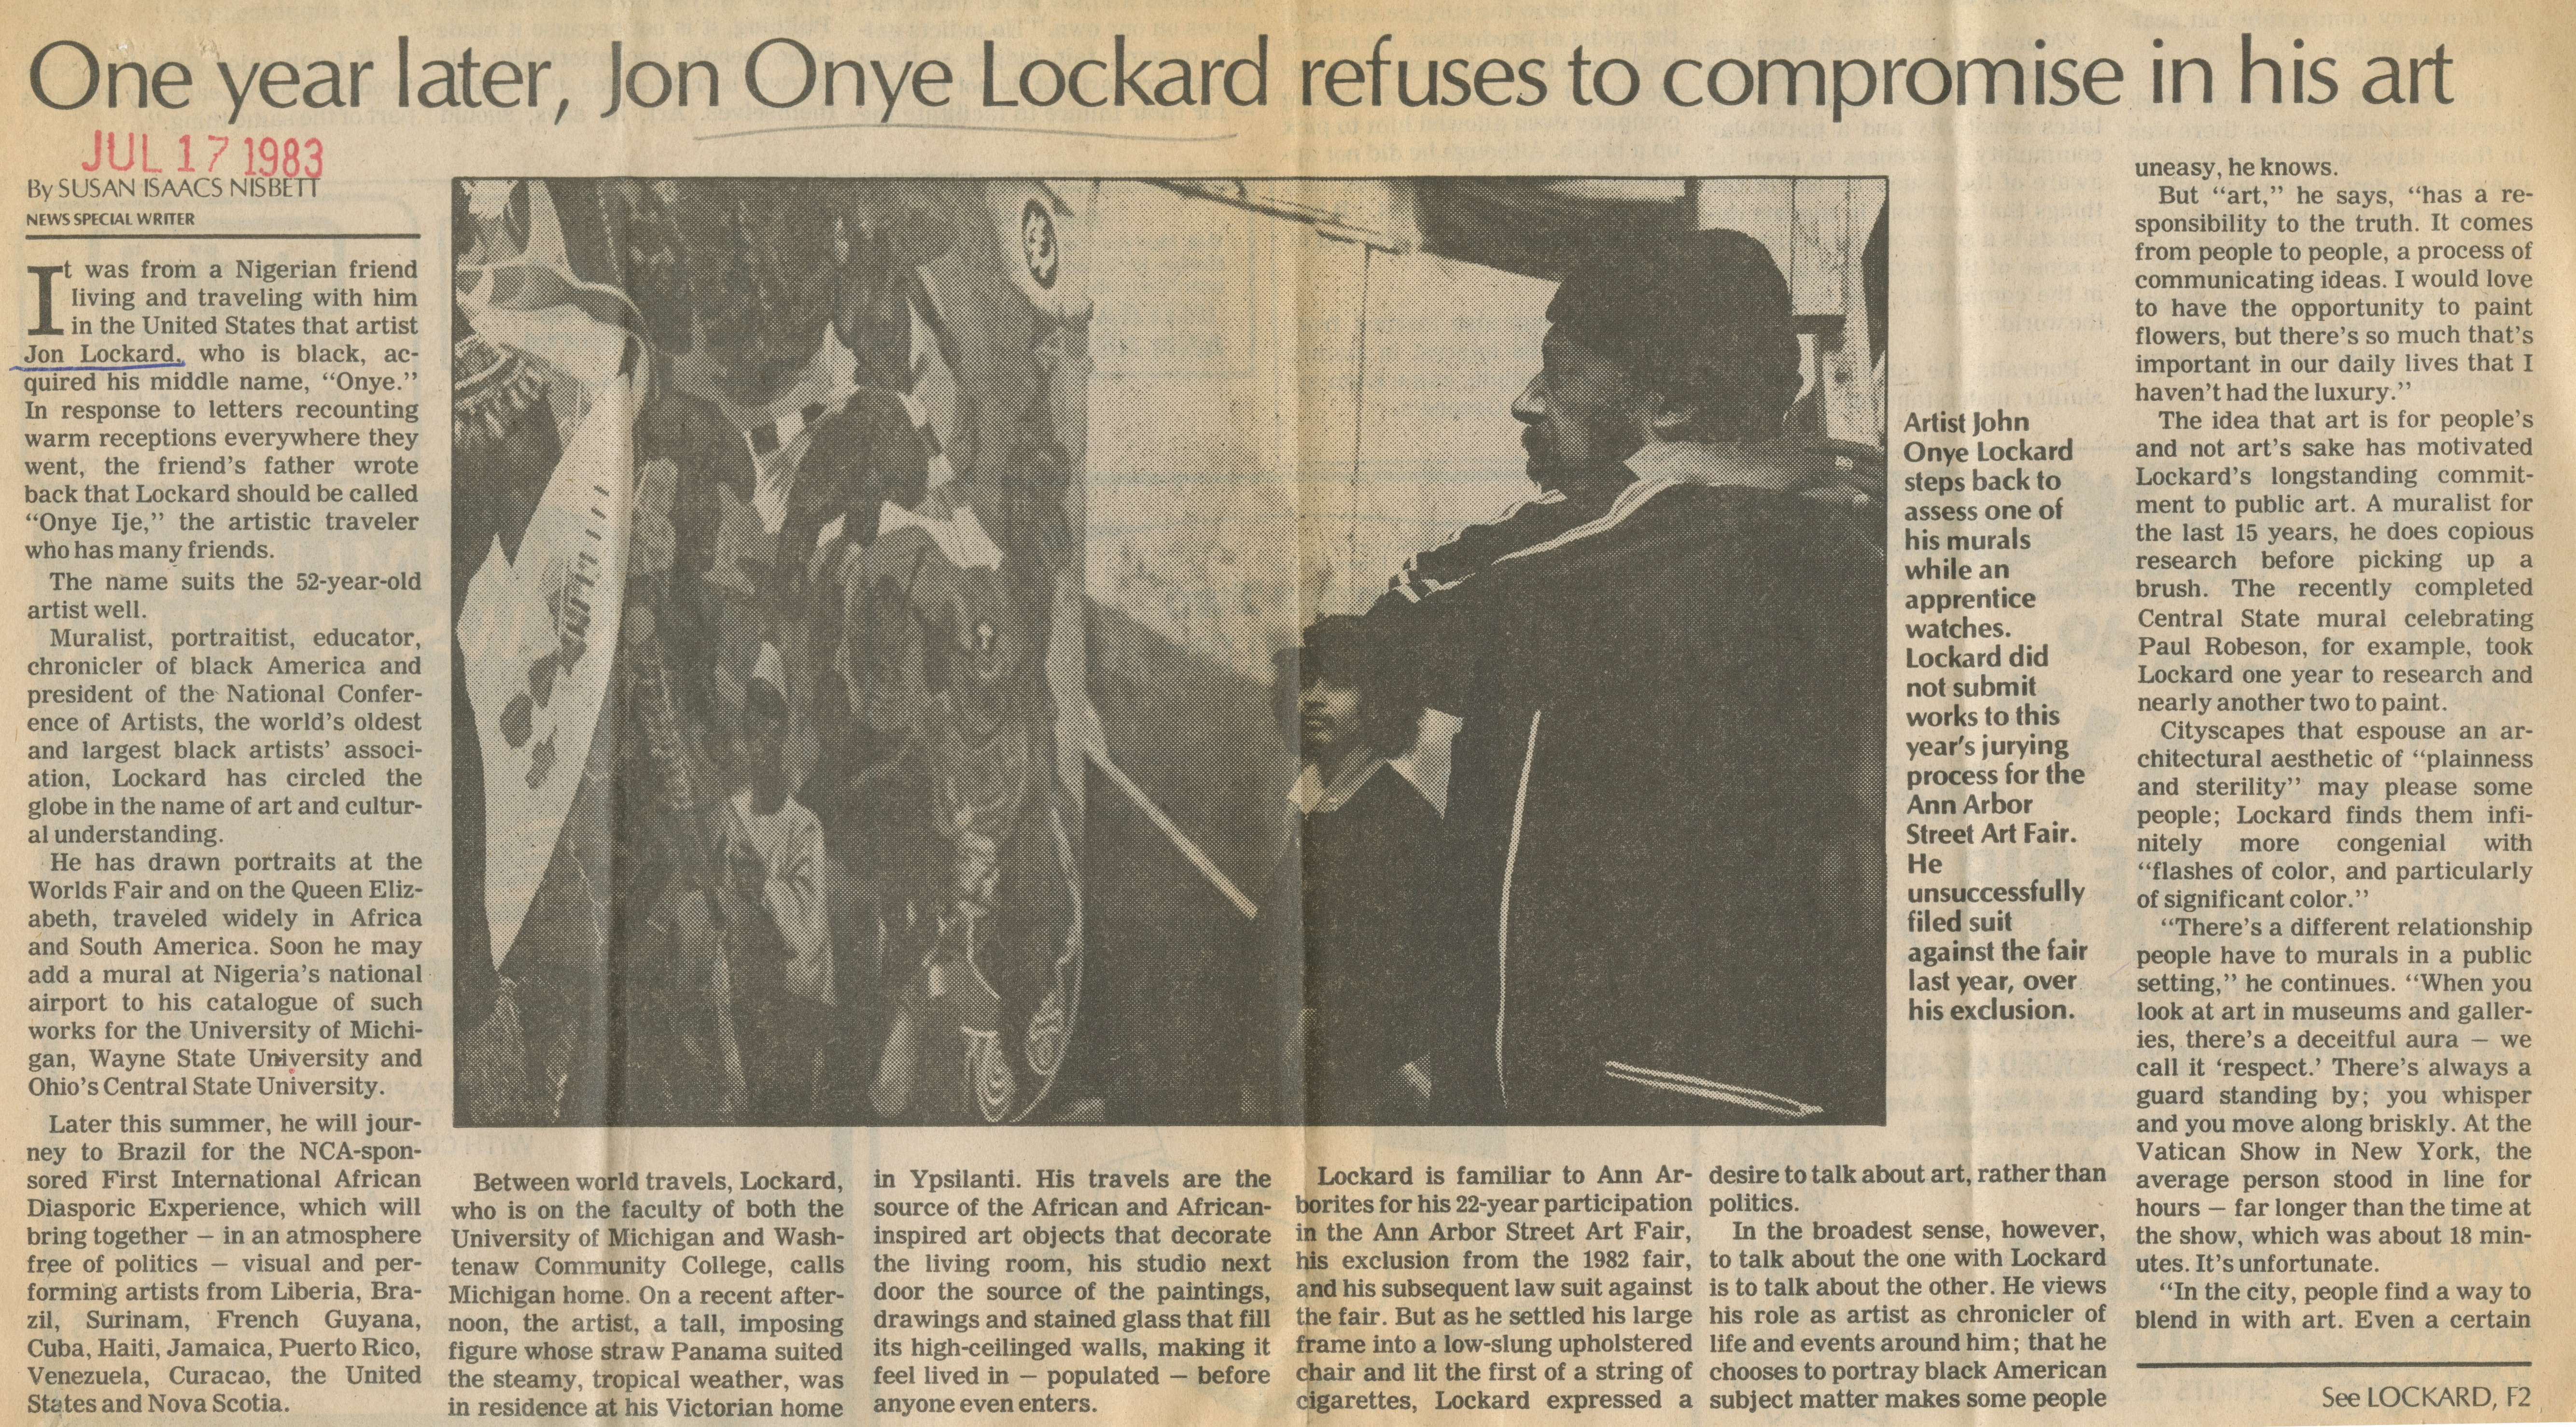 One year later, Jon Onye Lockard refuses to compromise in his art image